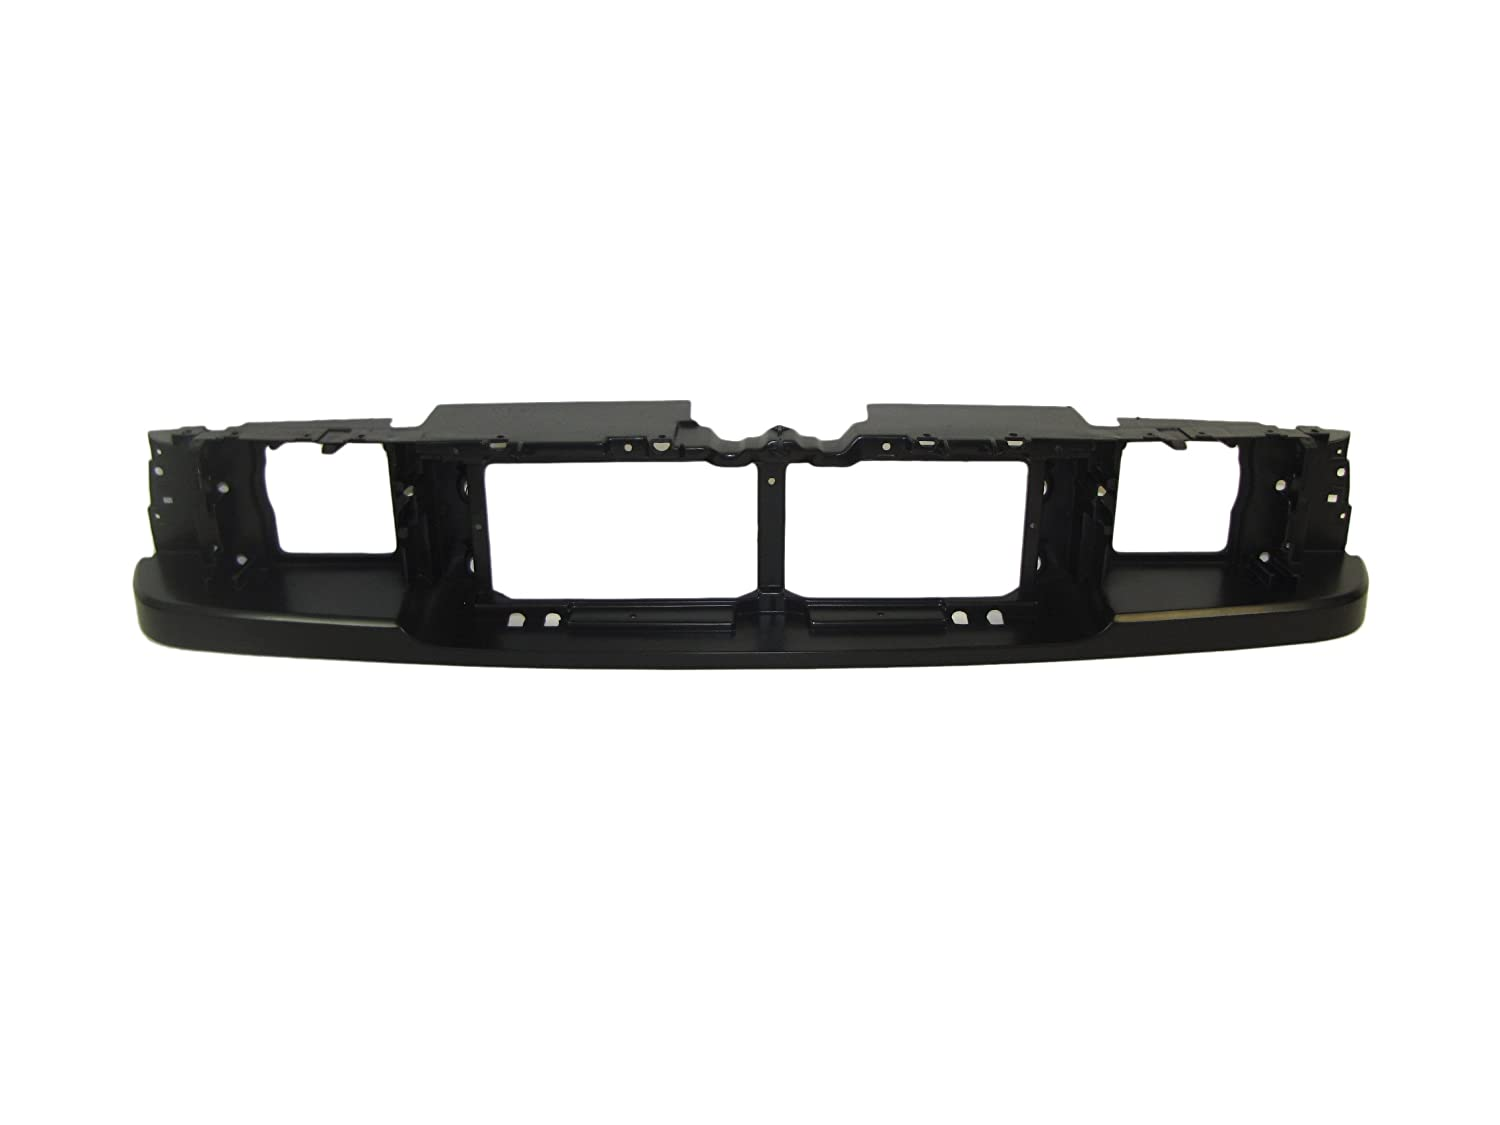 93-97 Ford Ranger Front Headlight Mounting Panel Header Panel FO1220193 Meets or exceeds Dot and SAE standard